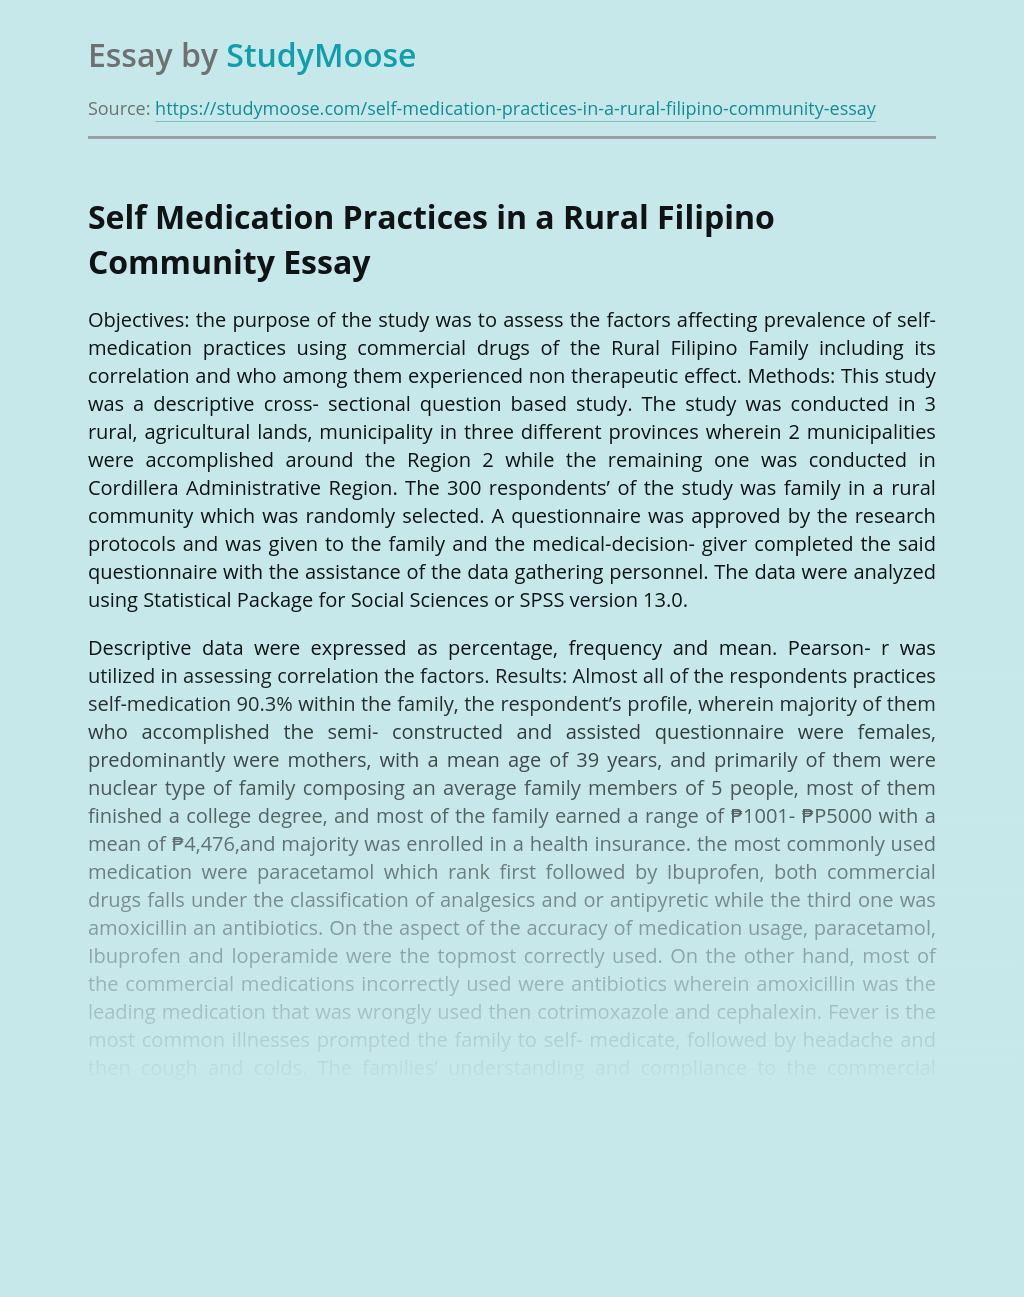 Self Medication Practices in a Rural Filipino Community